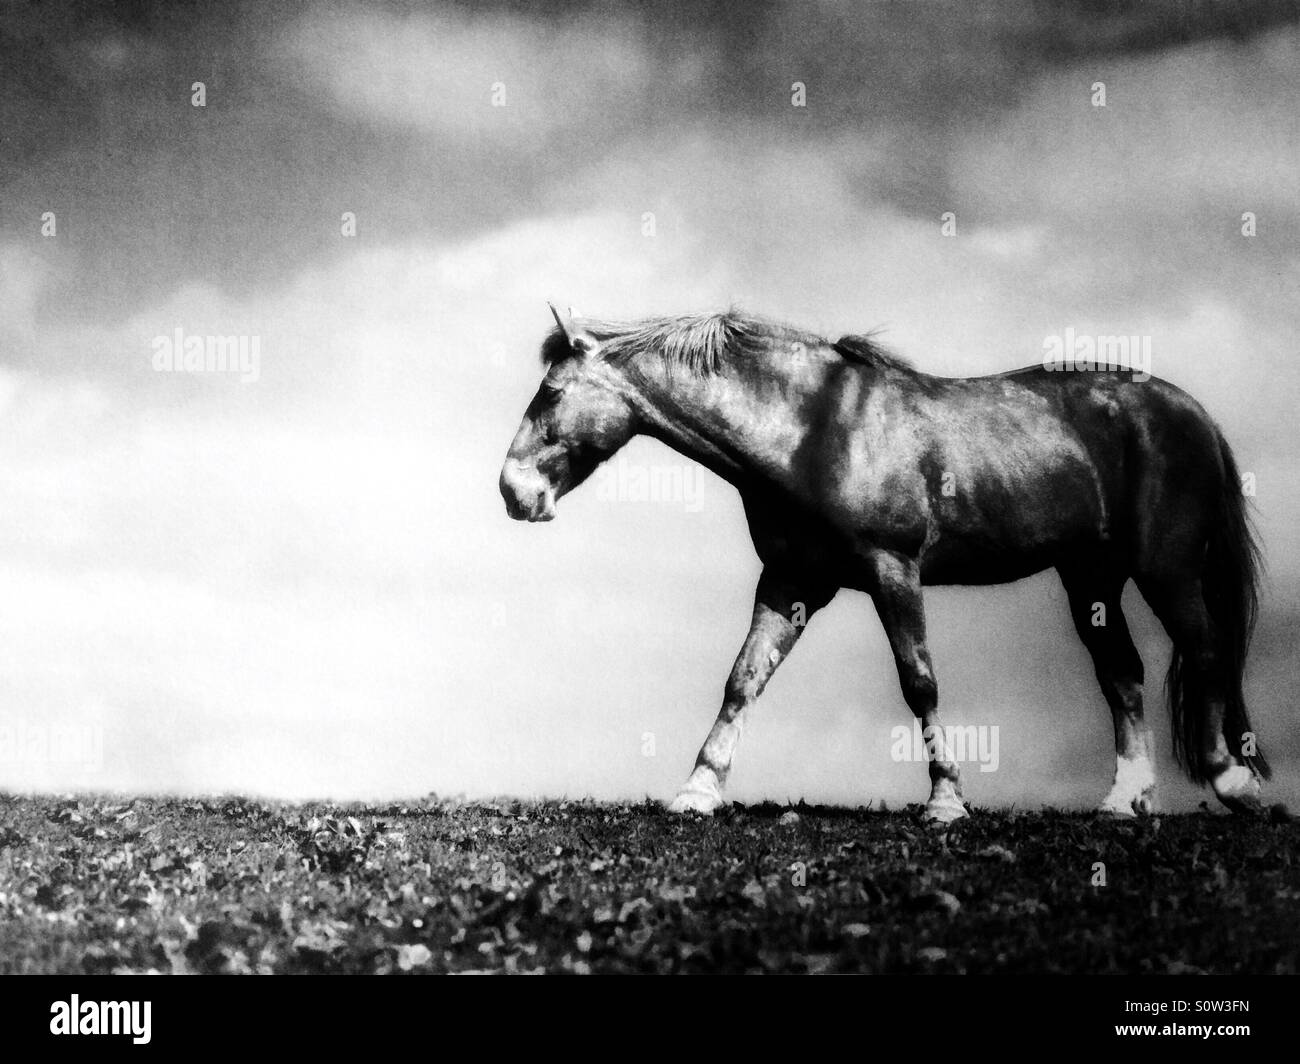 Horse walking through a winter field - Stock Image